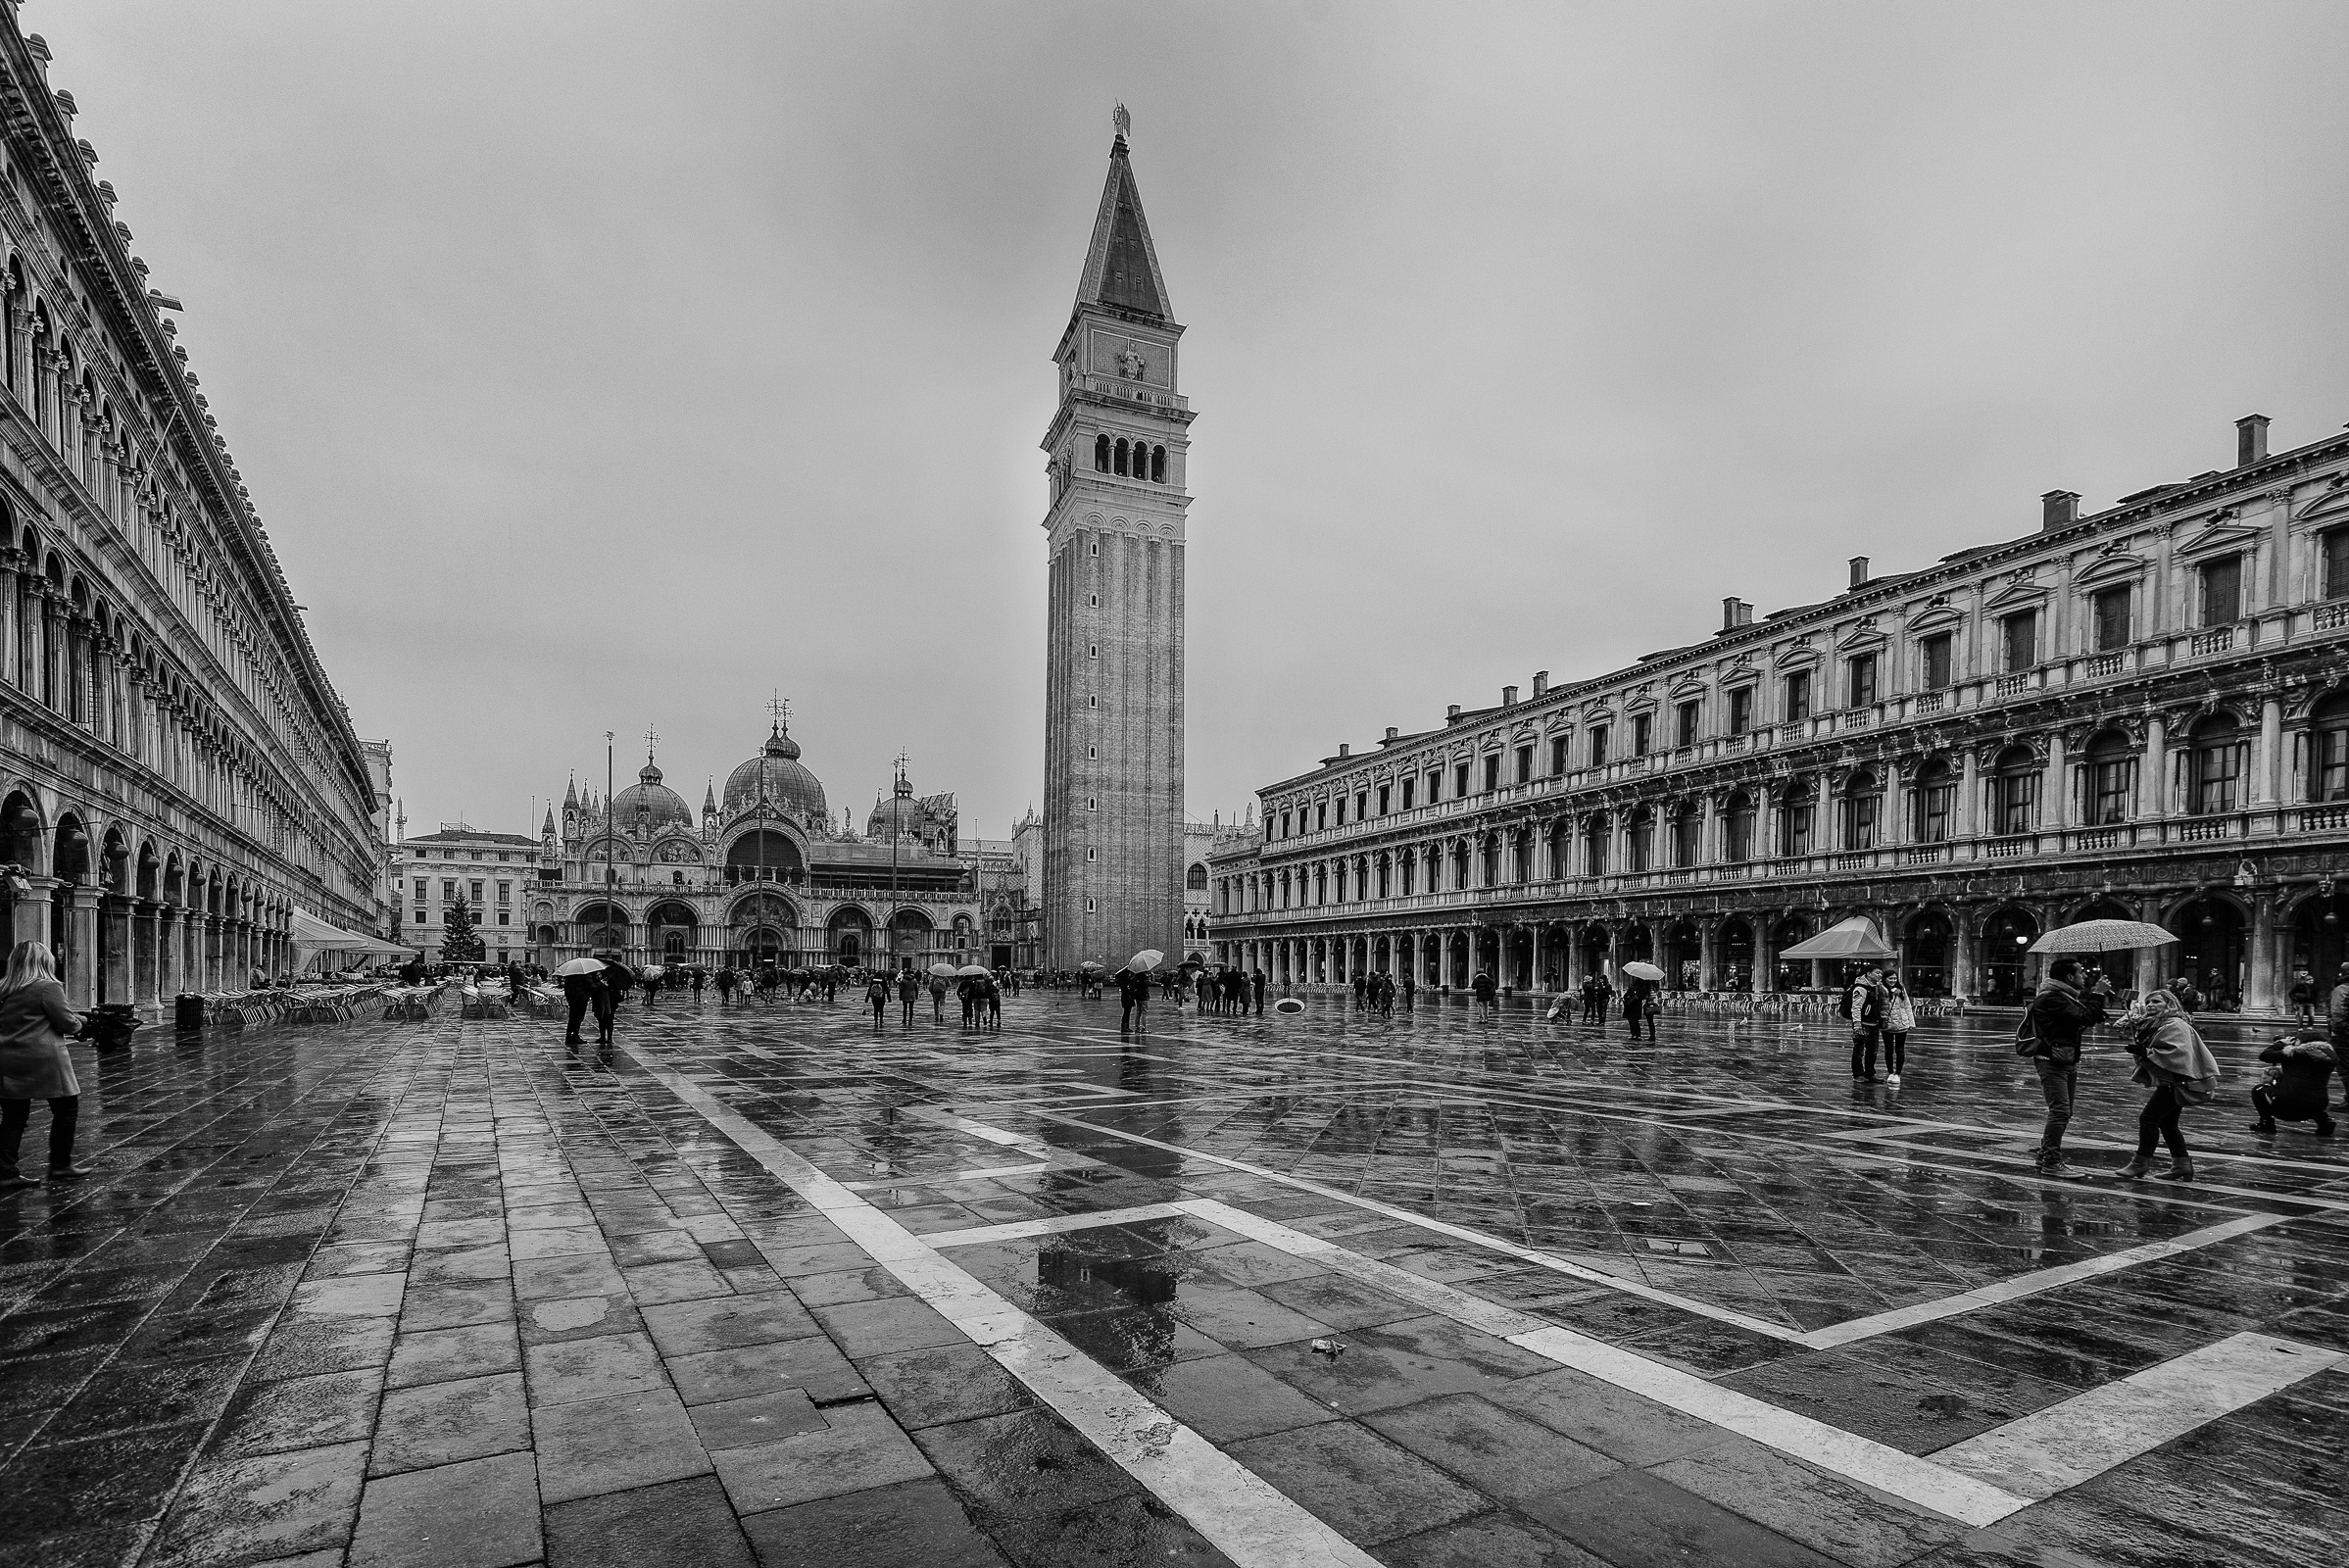 The gloomy day does not erase the charm of Piazza S...